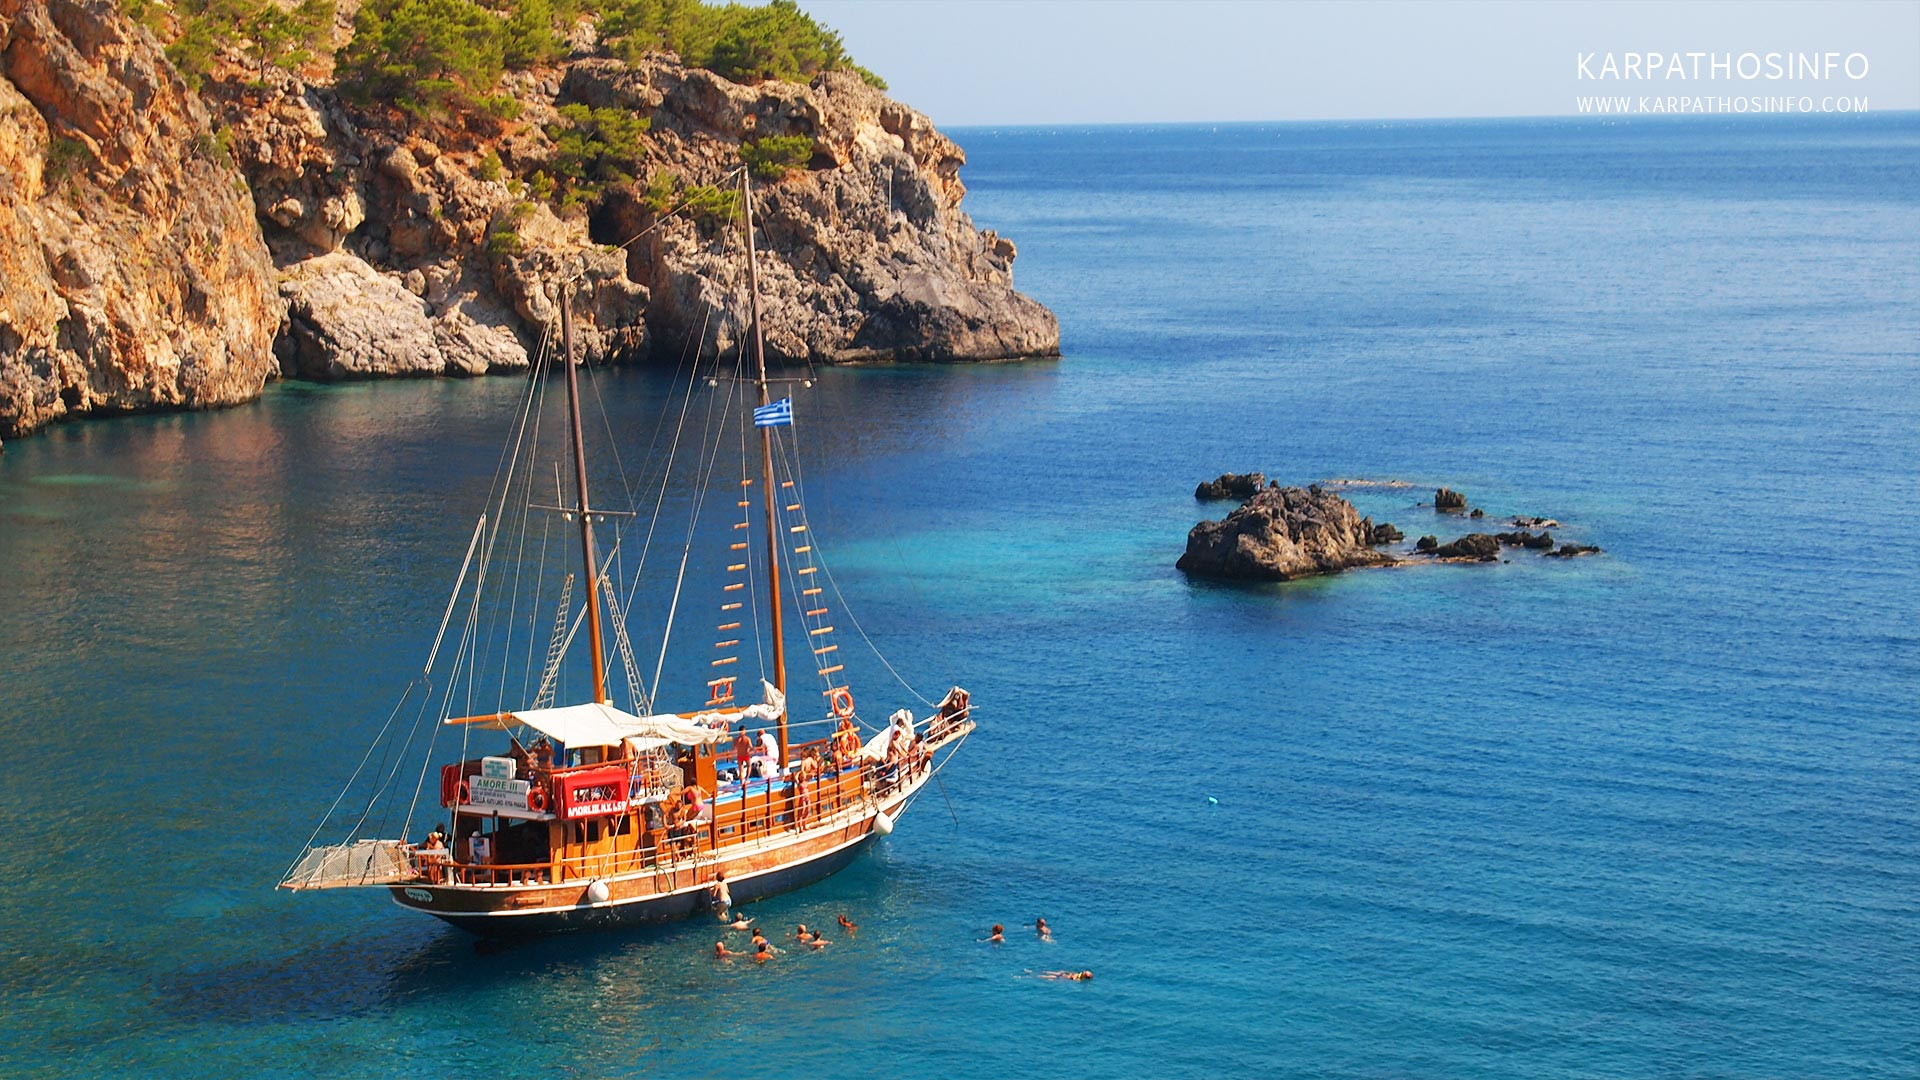 images/slider/travel-to-karpathos.jpg